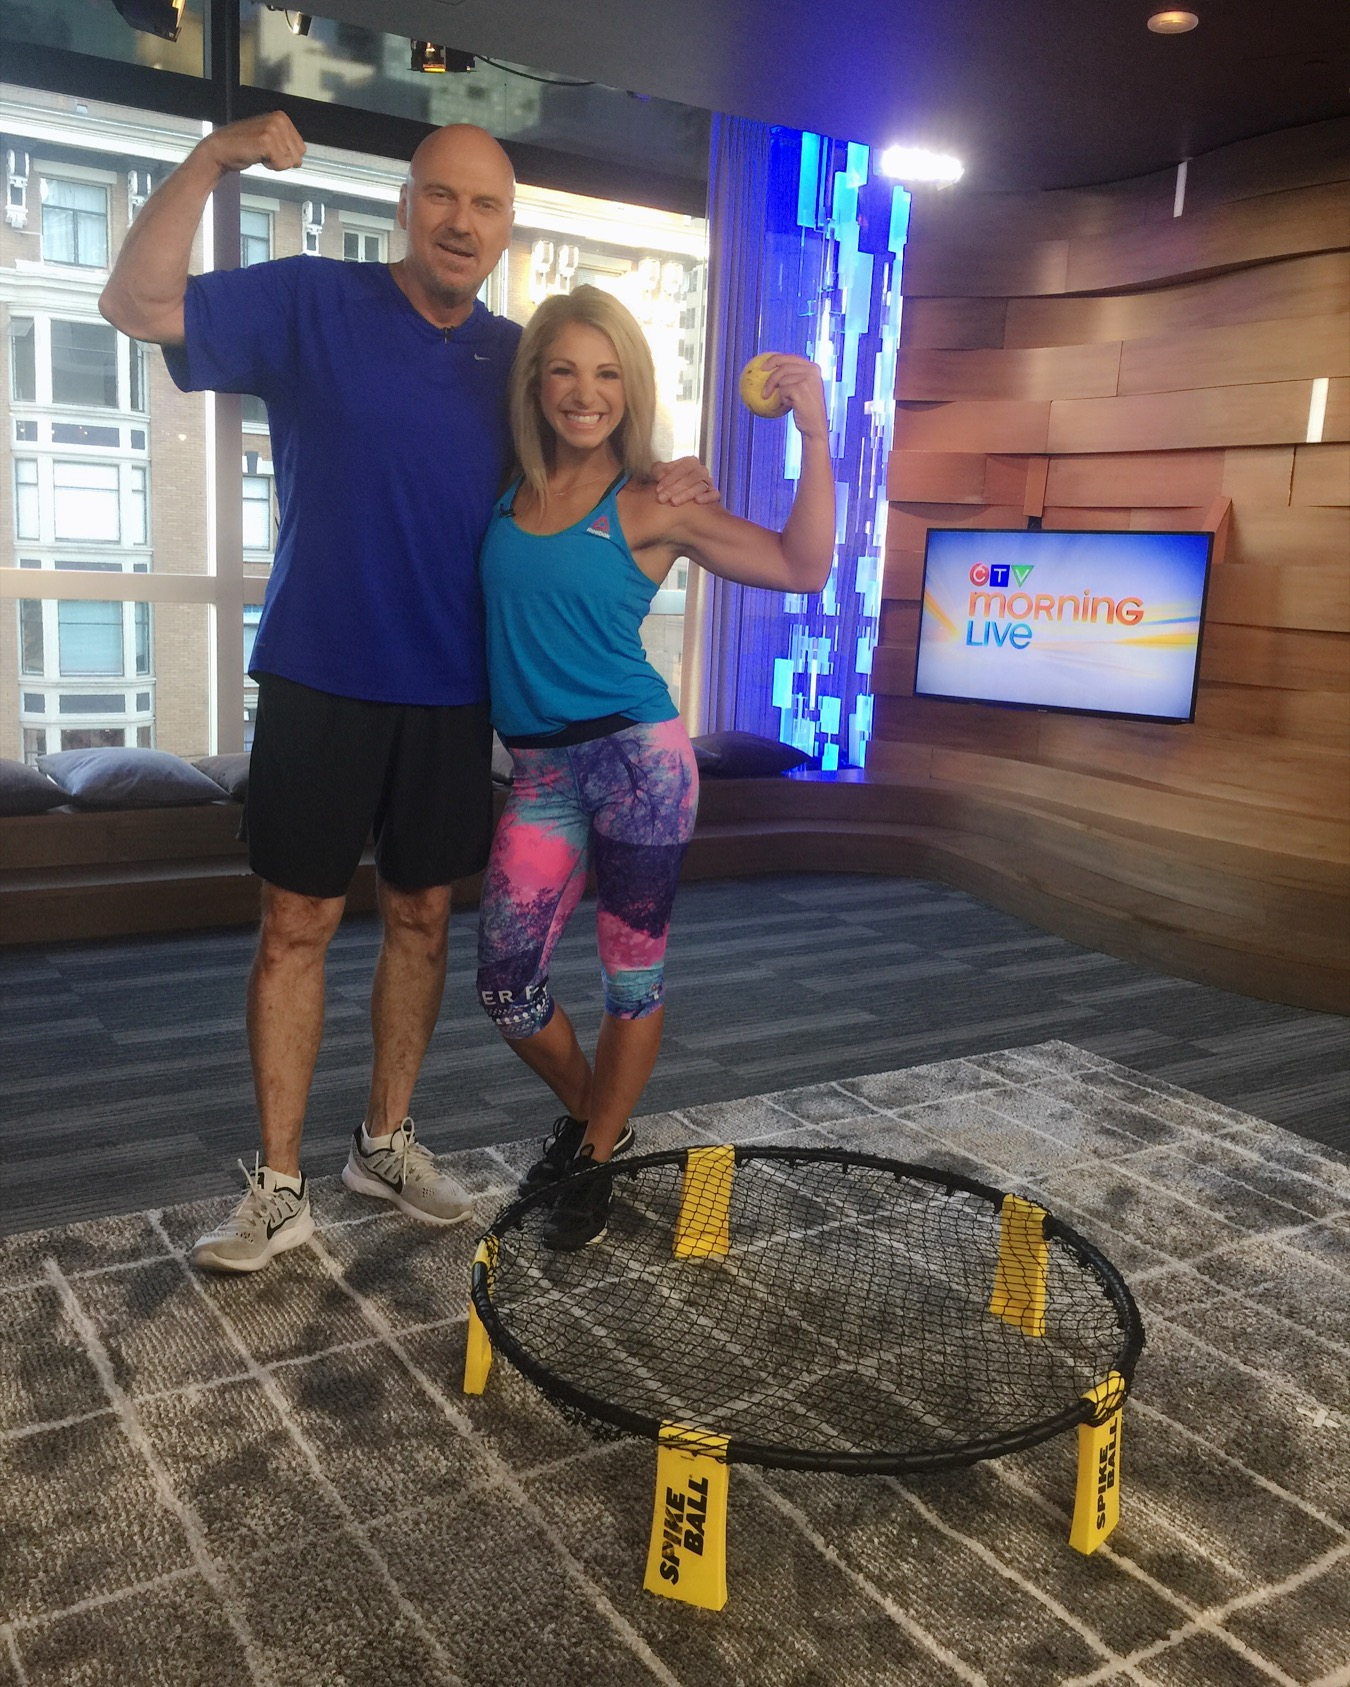 Mandy and Marke Playing Spikeball - CTV Morning Live